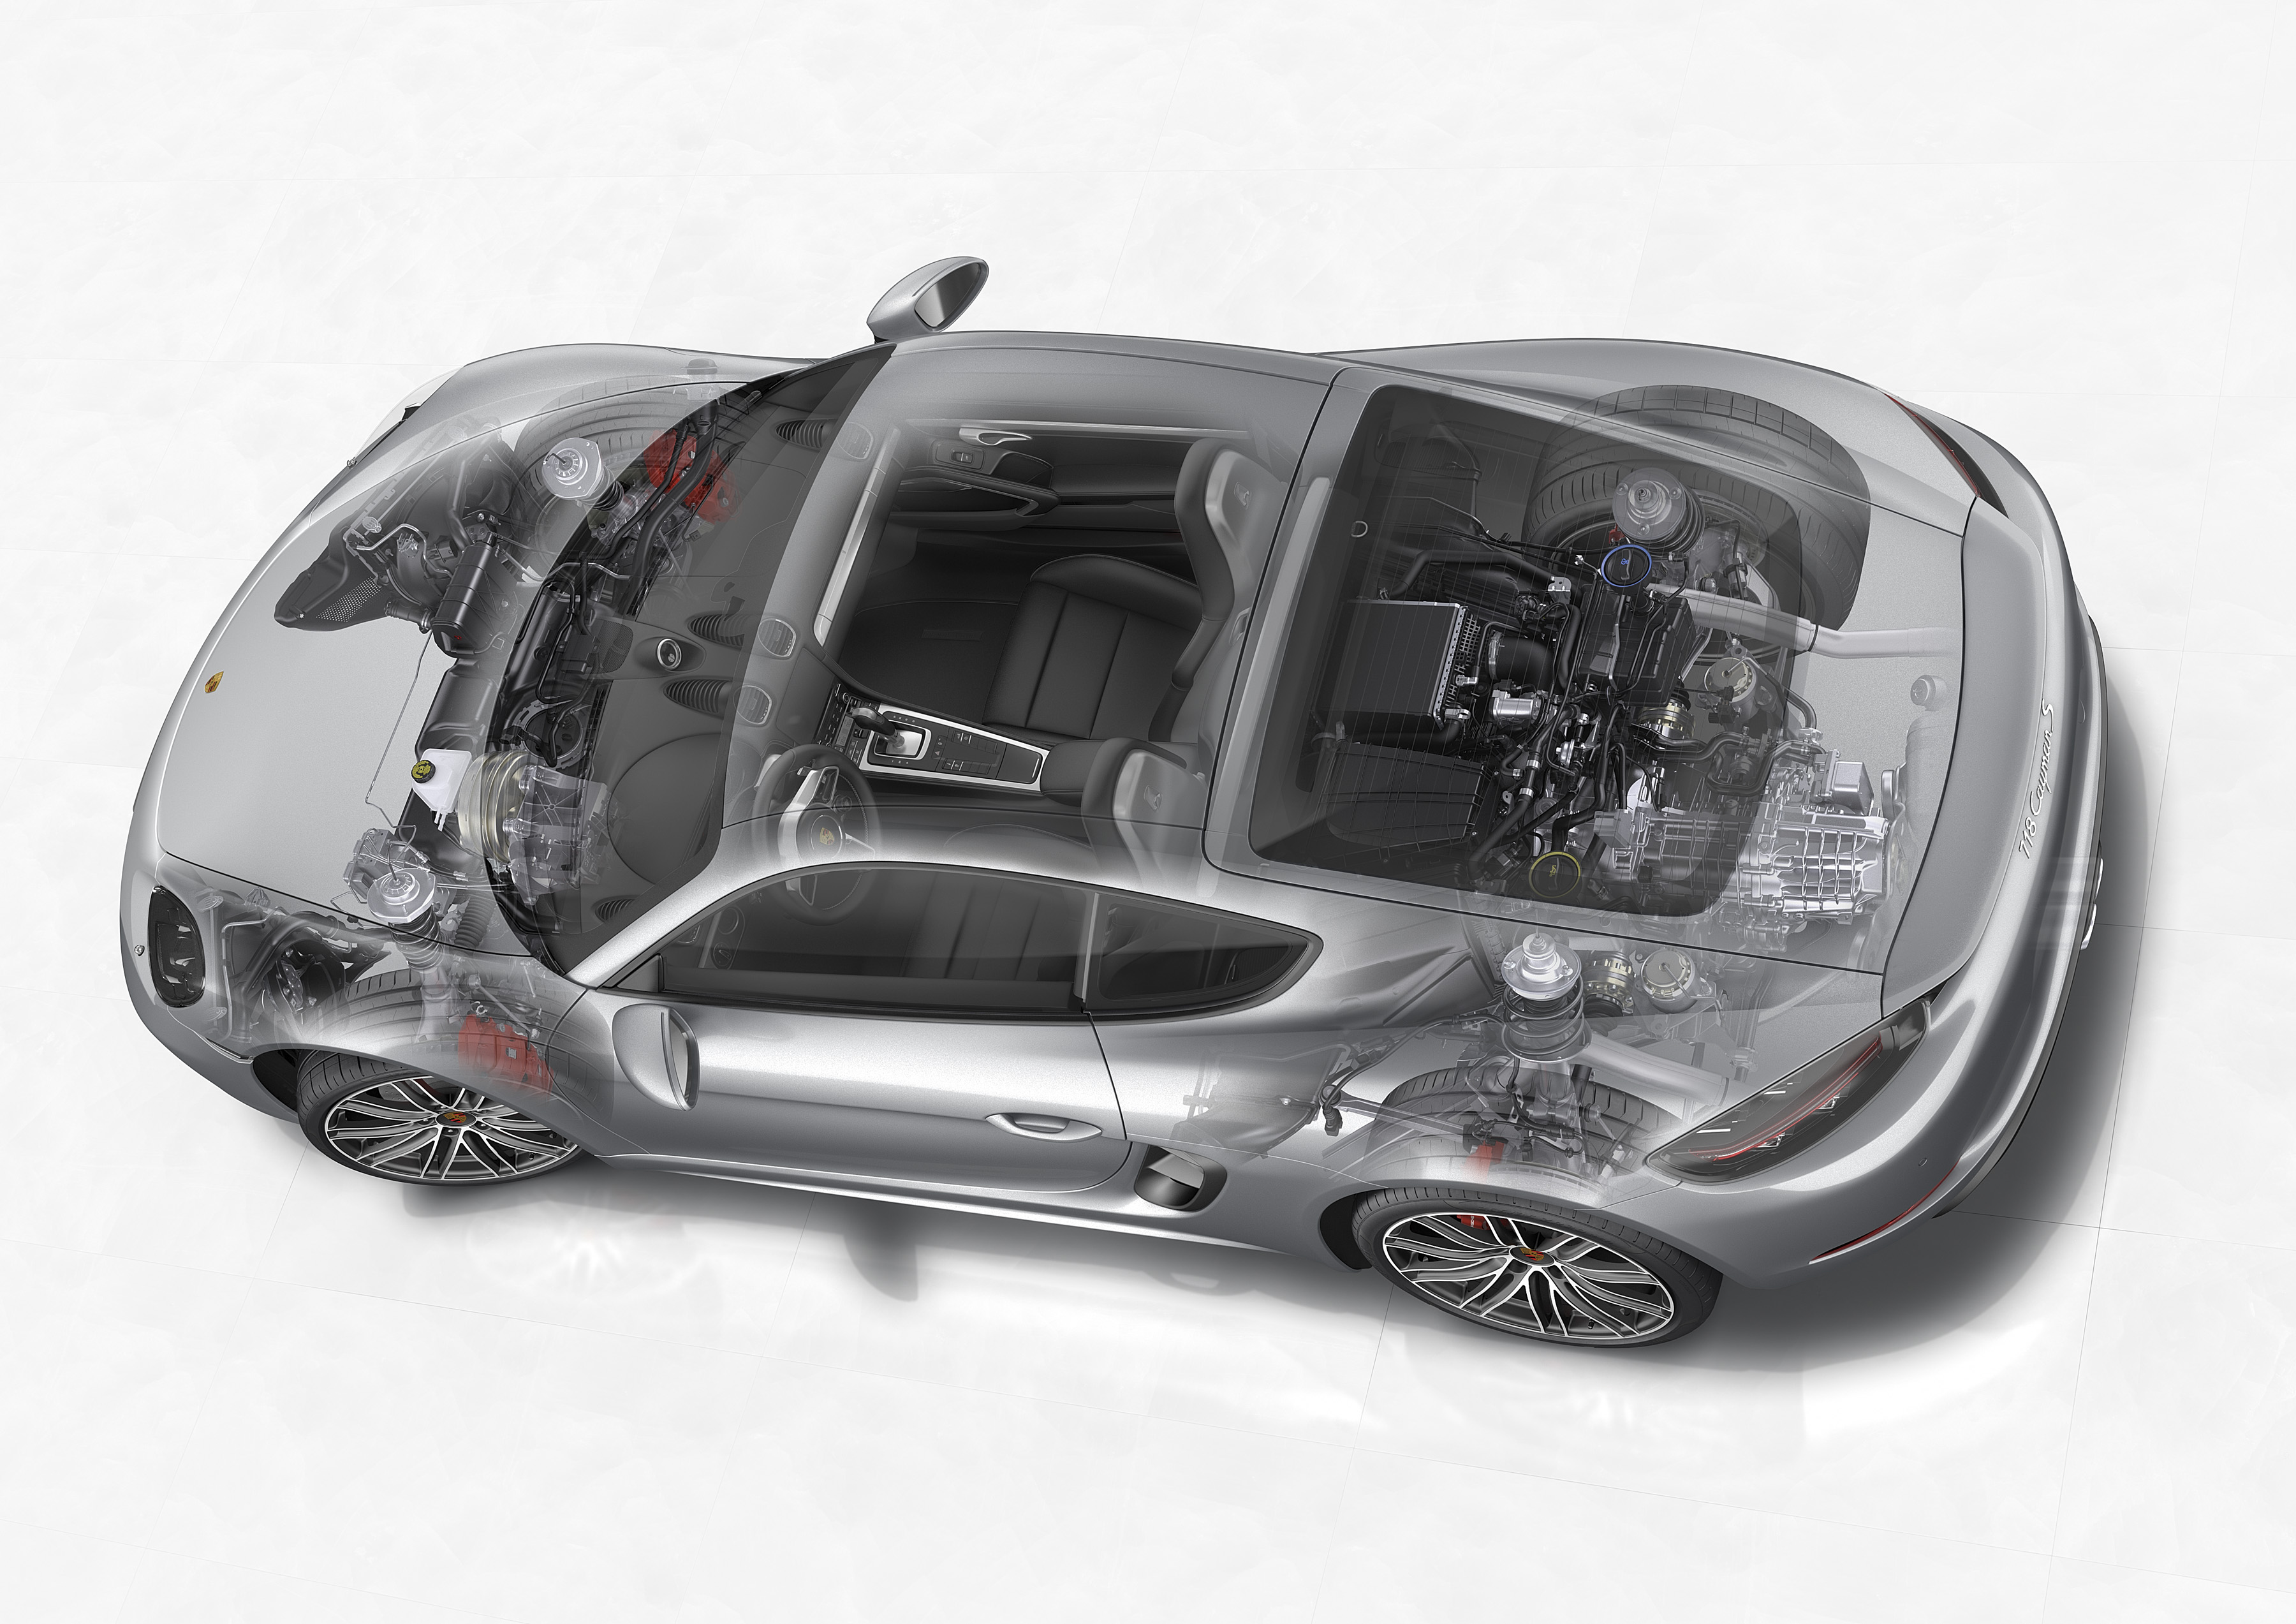 porsche confirms n a flat 6 will live on in 718 boxster spyder 718 cayman gt4 autoevolution. Black Bedroom Furniture Sets. Home Design Ideas